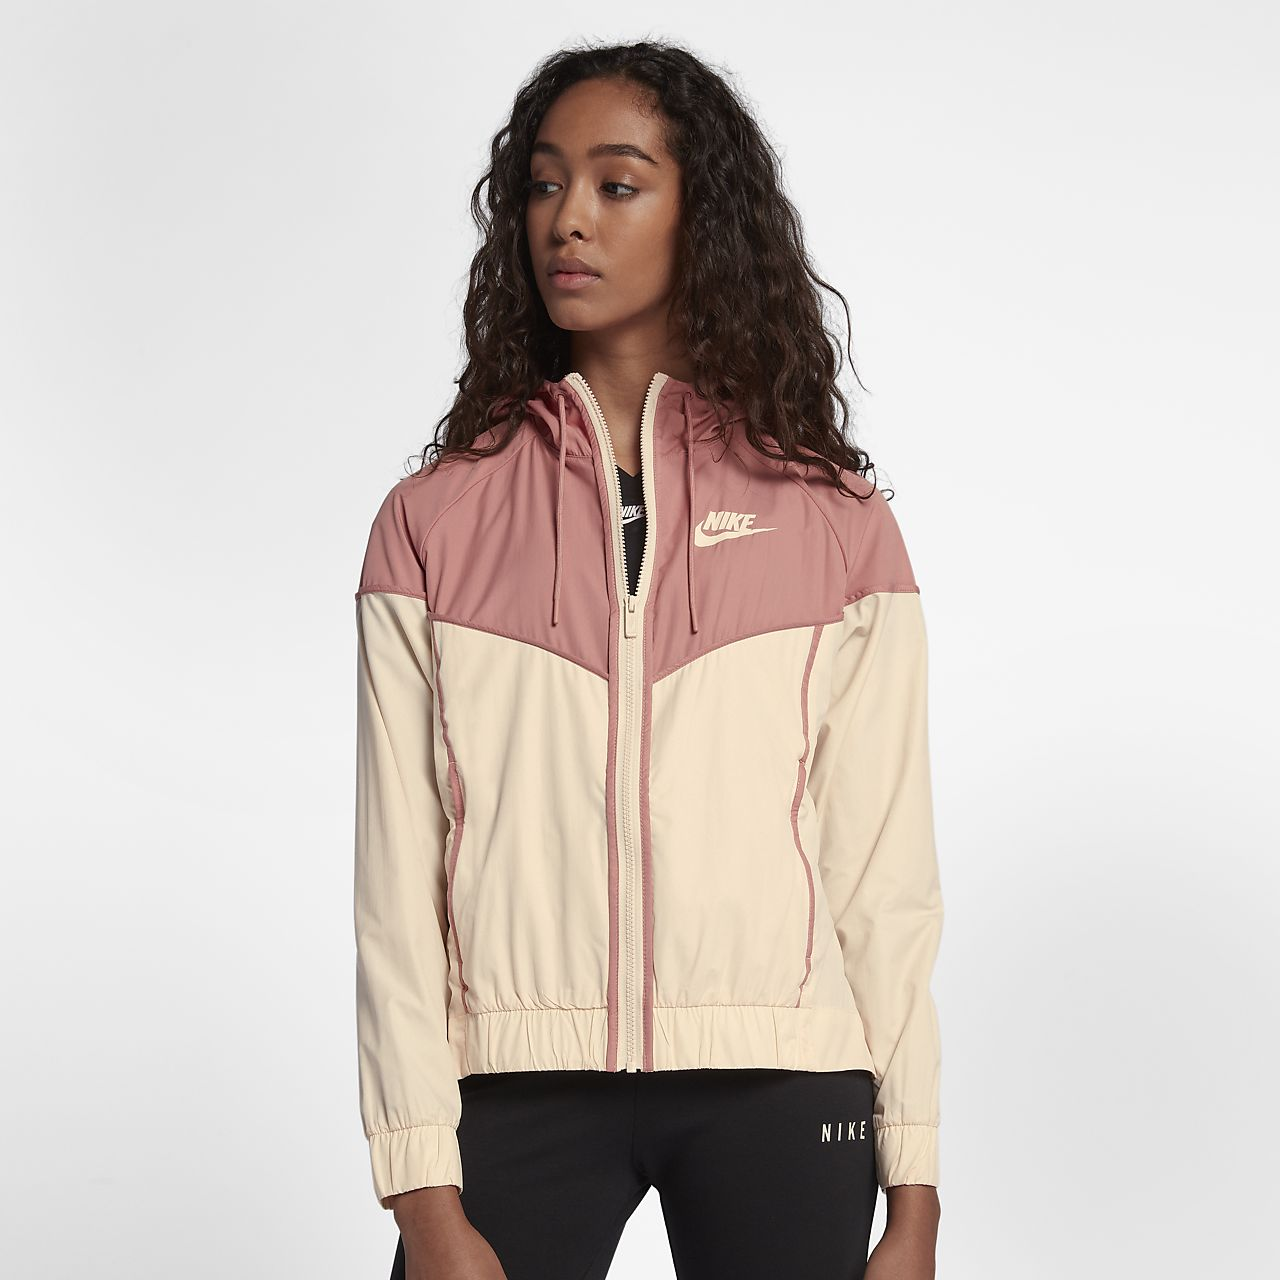 a0913533c84bb5 ... Nike Sportswear Windrunner Women s Jacket ...